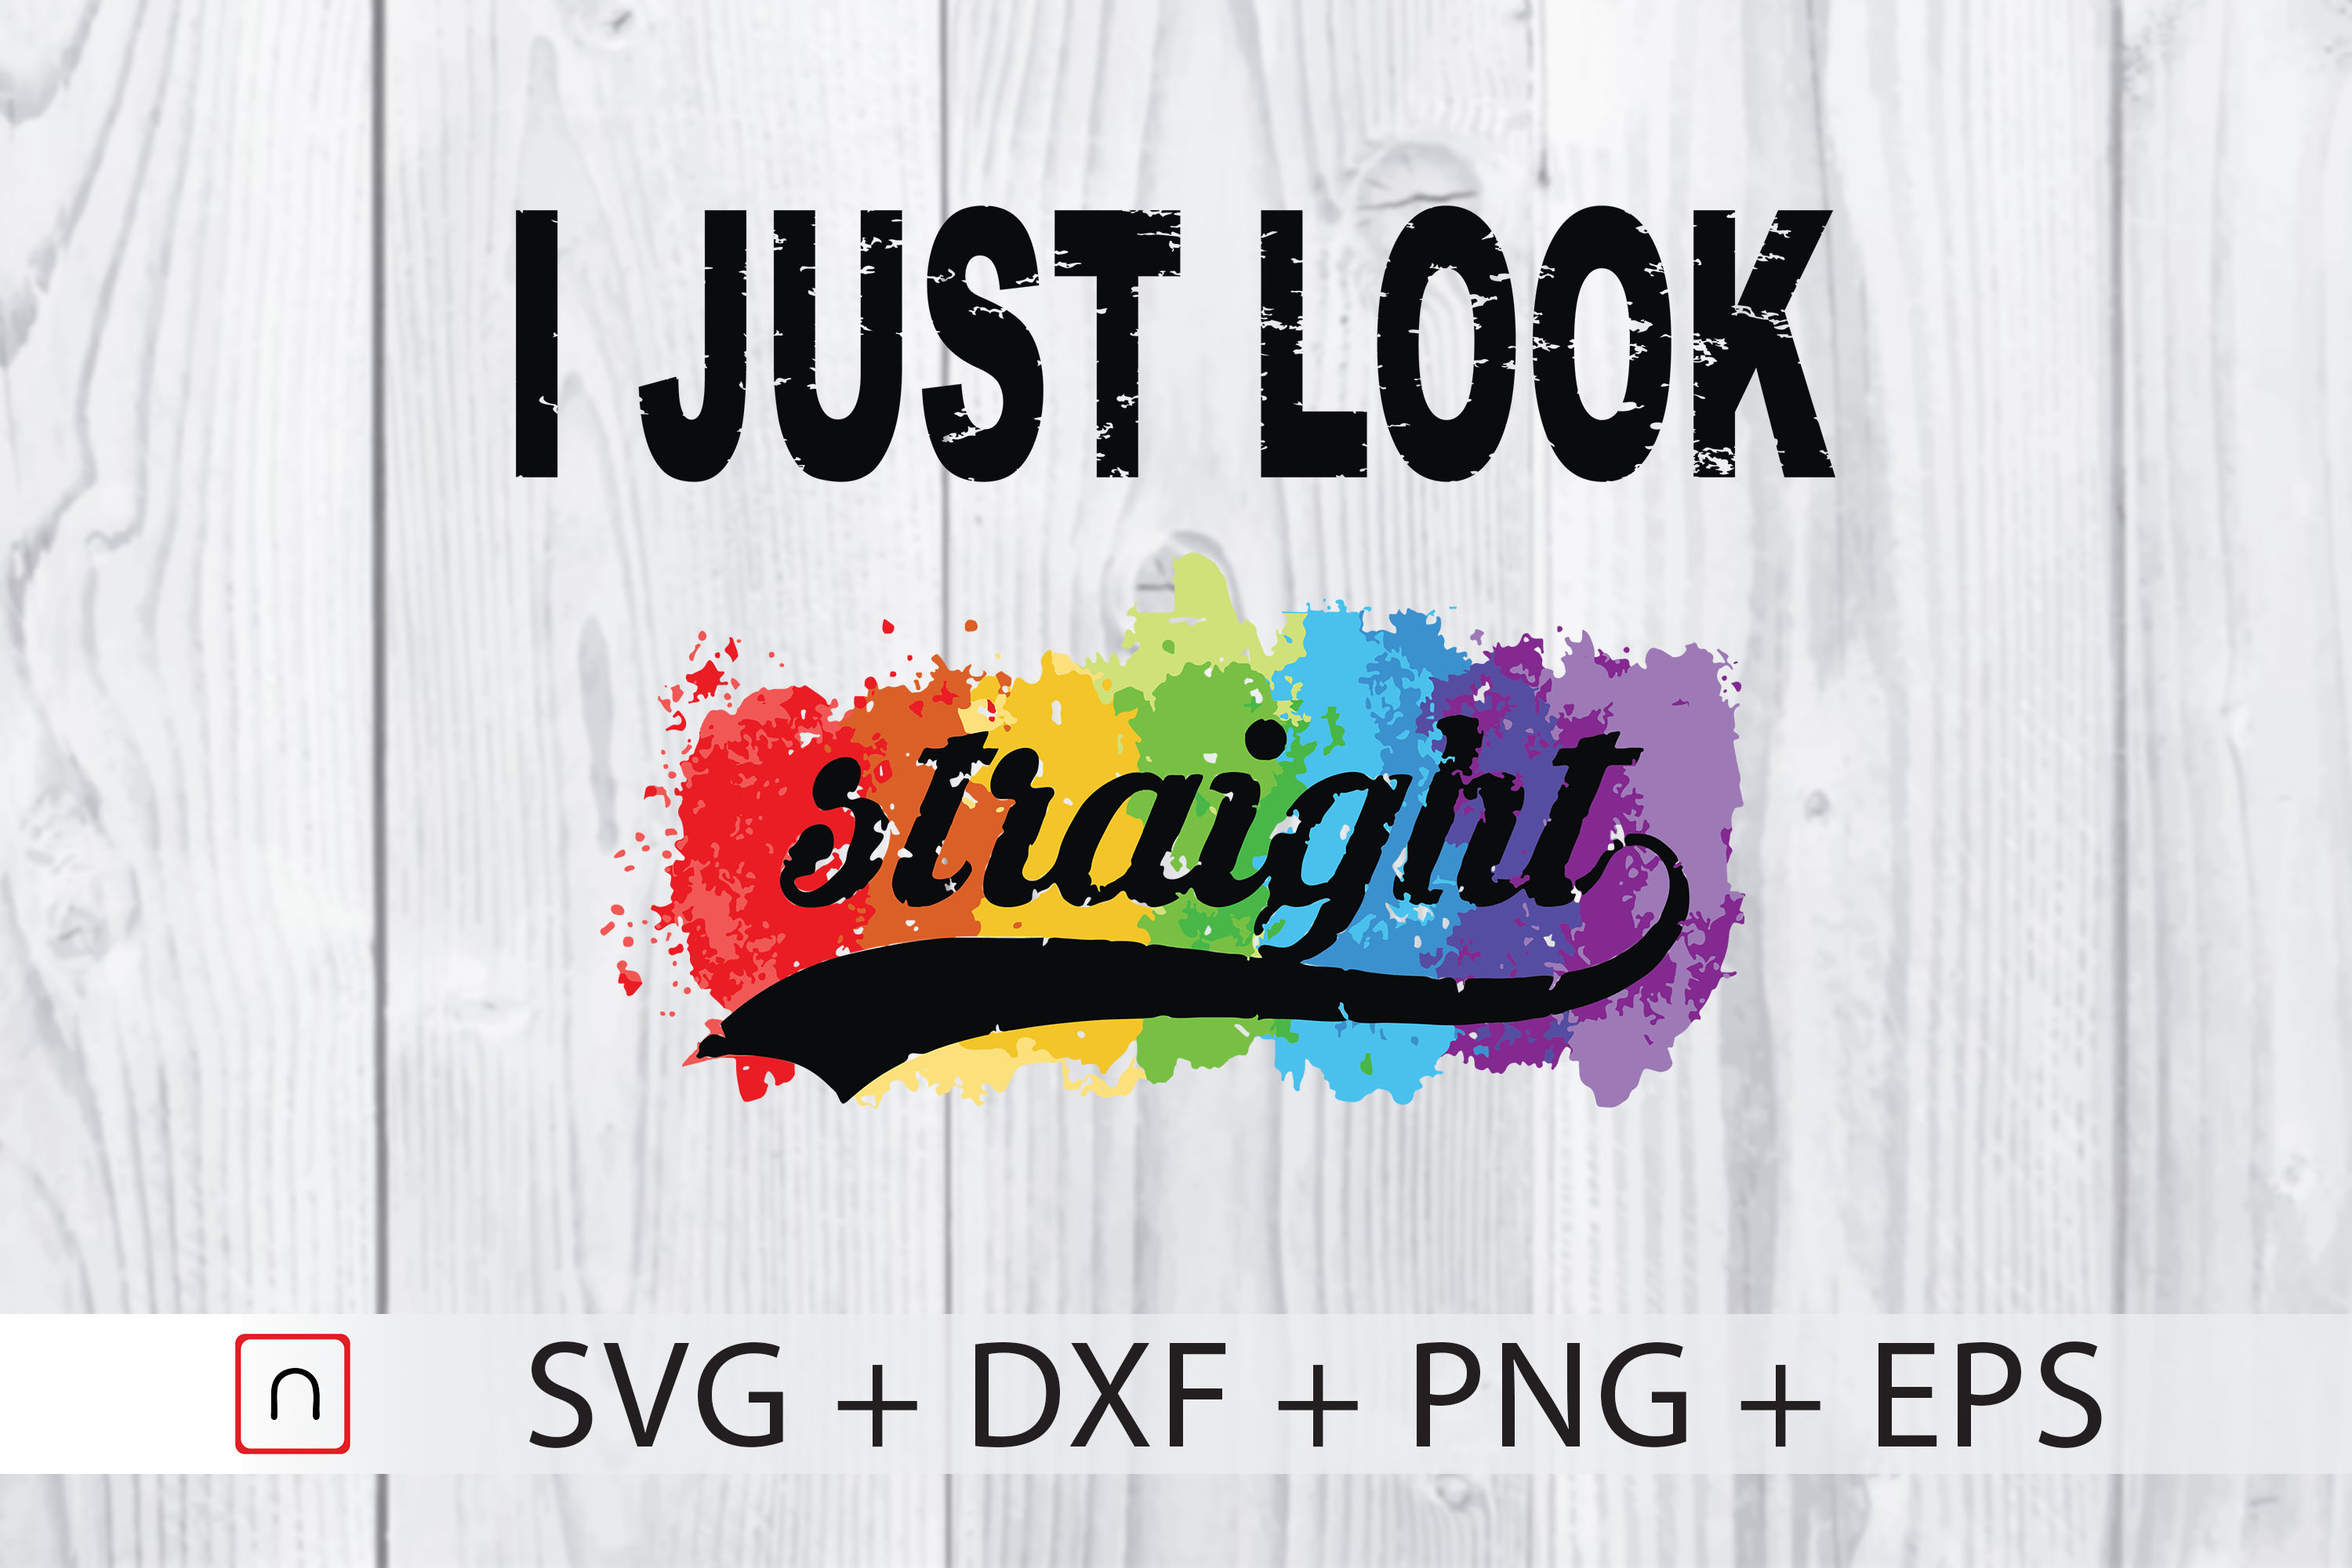 Download Free I Just Look Straight Svg Lgbtq Pride Svg Graphic By Novalia for Cricut Explore, Silhouette and other cutting machines.